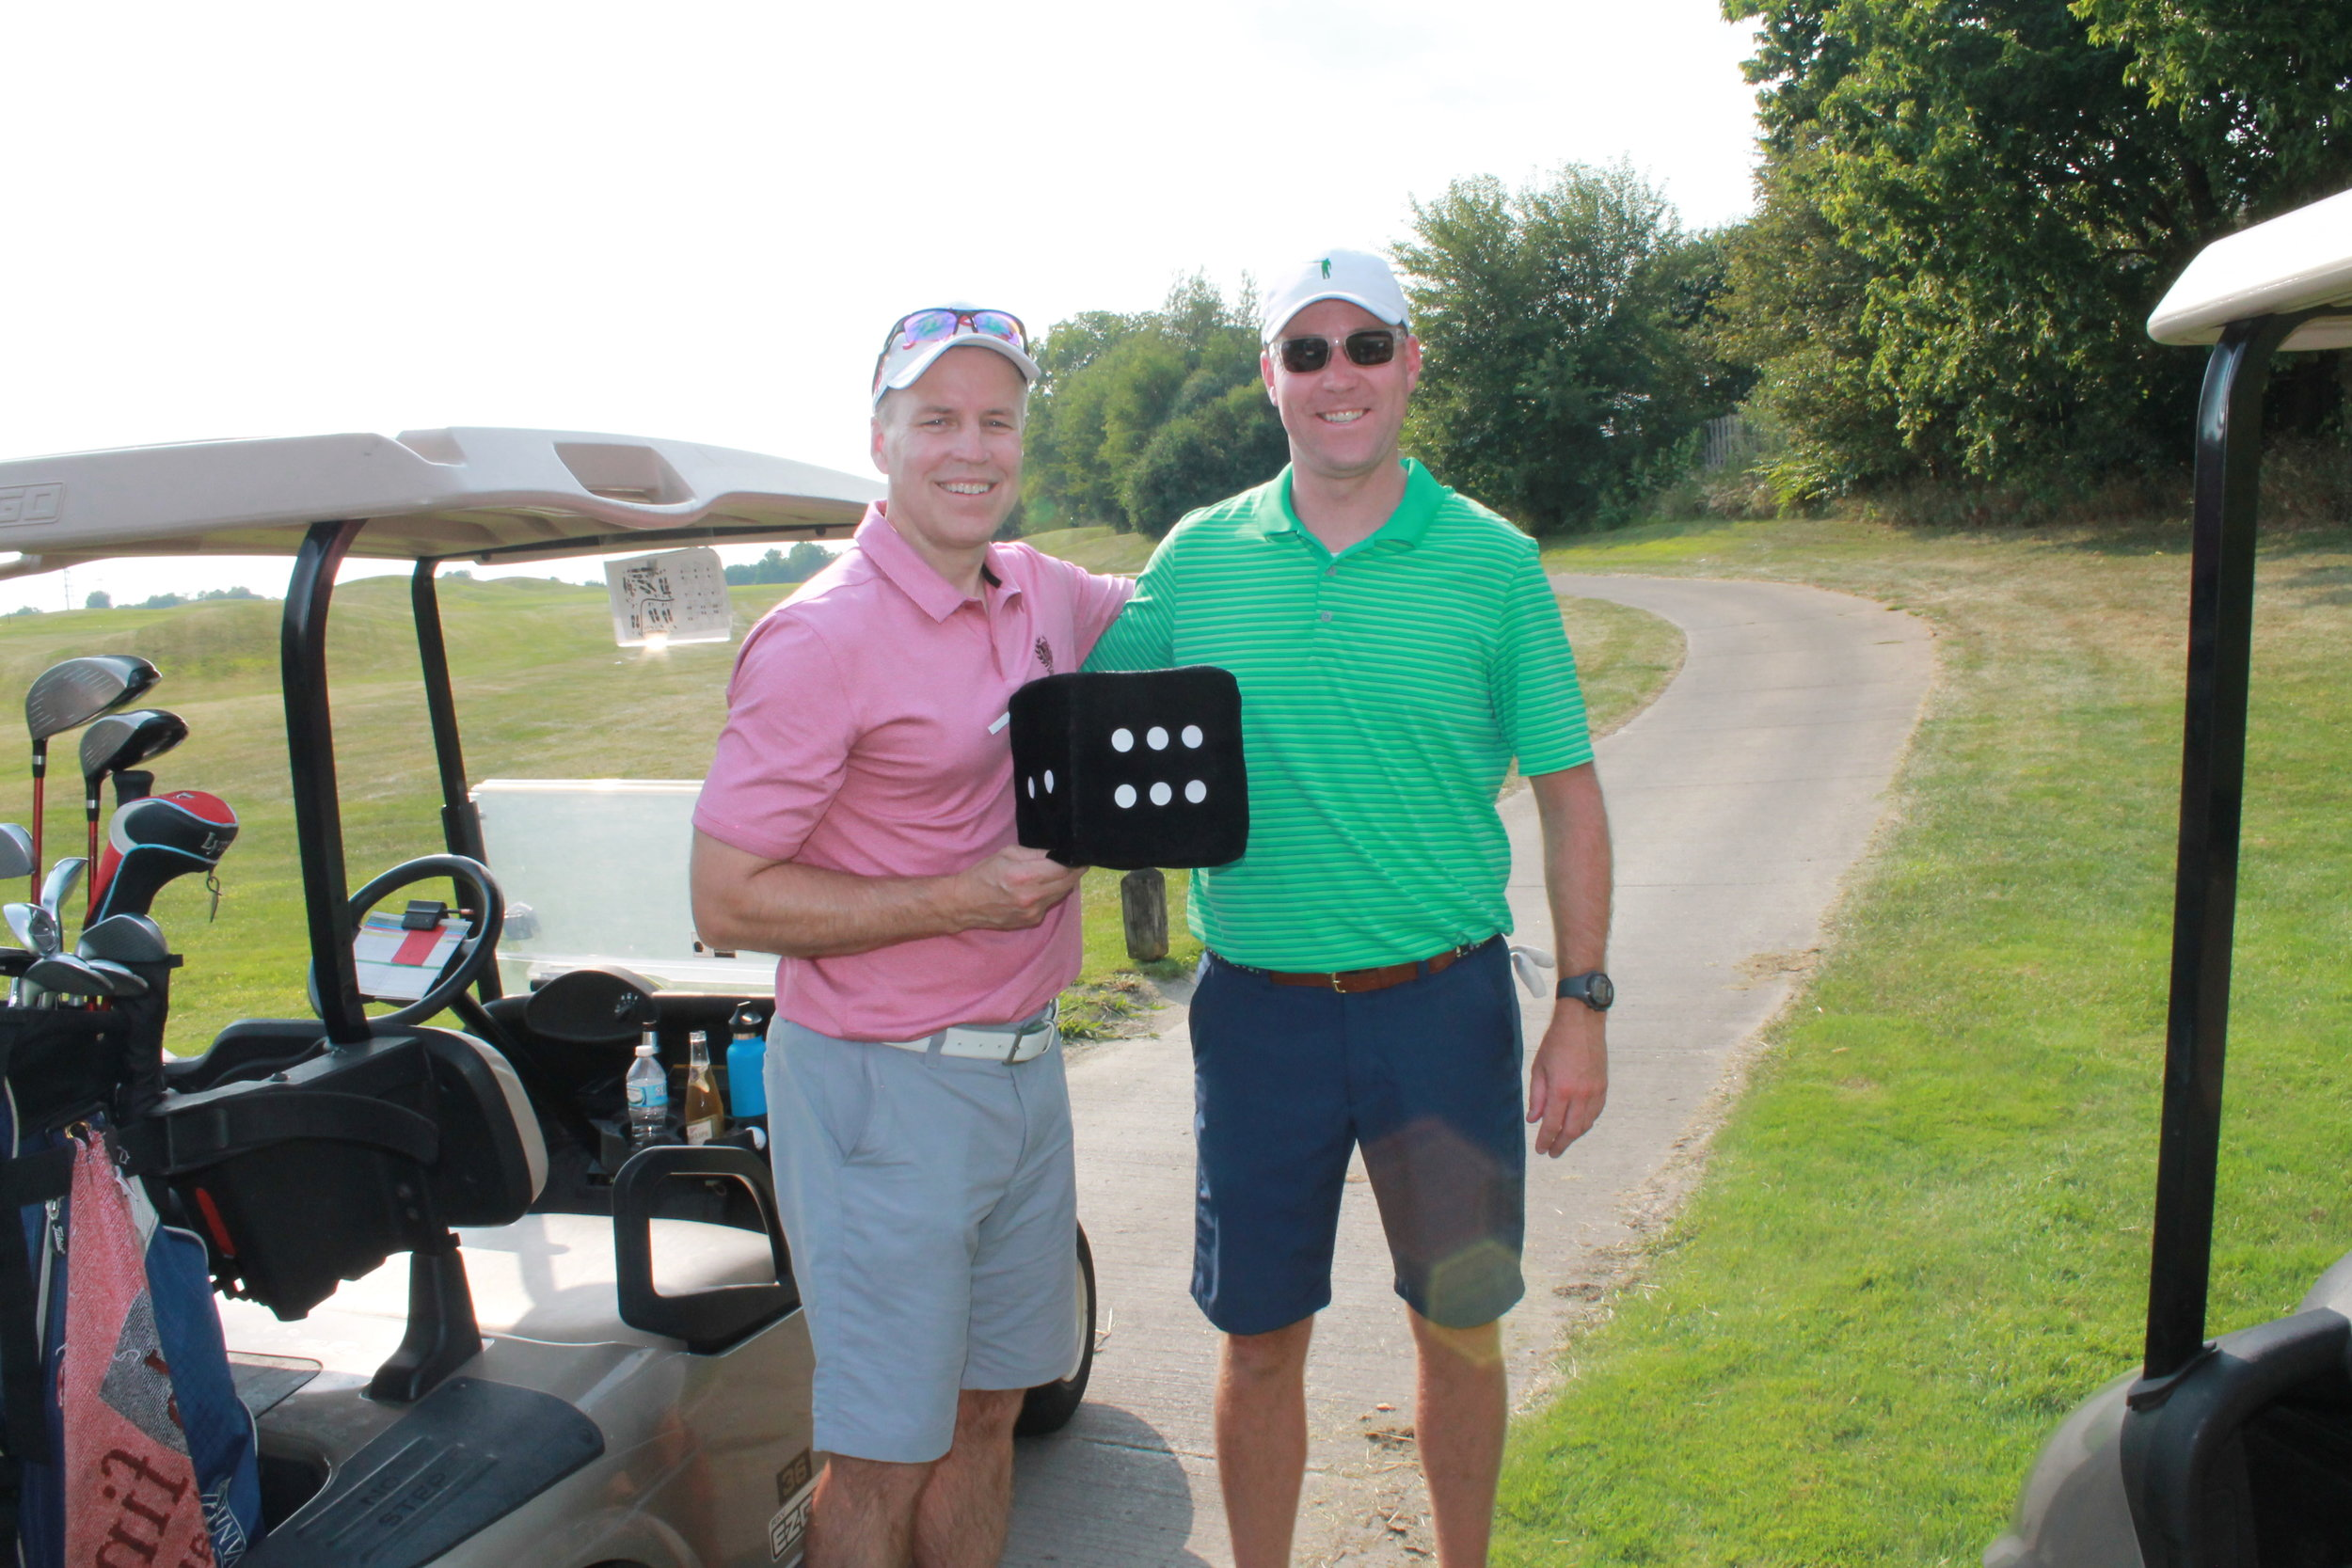 2018 Annual Scholarship Golf Outing - Click the photo to see photos from the event!